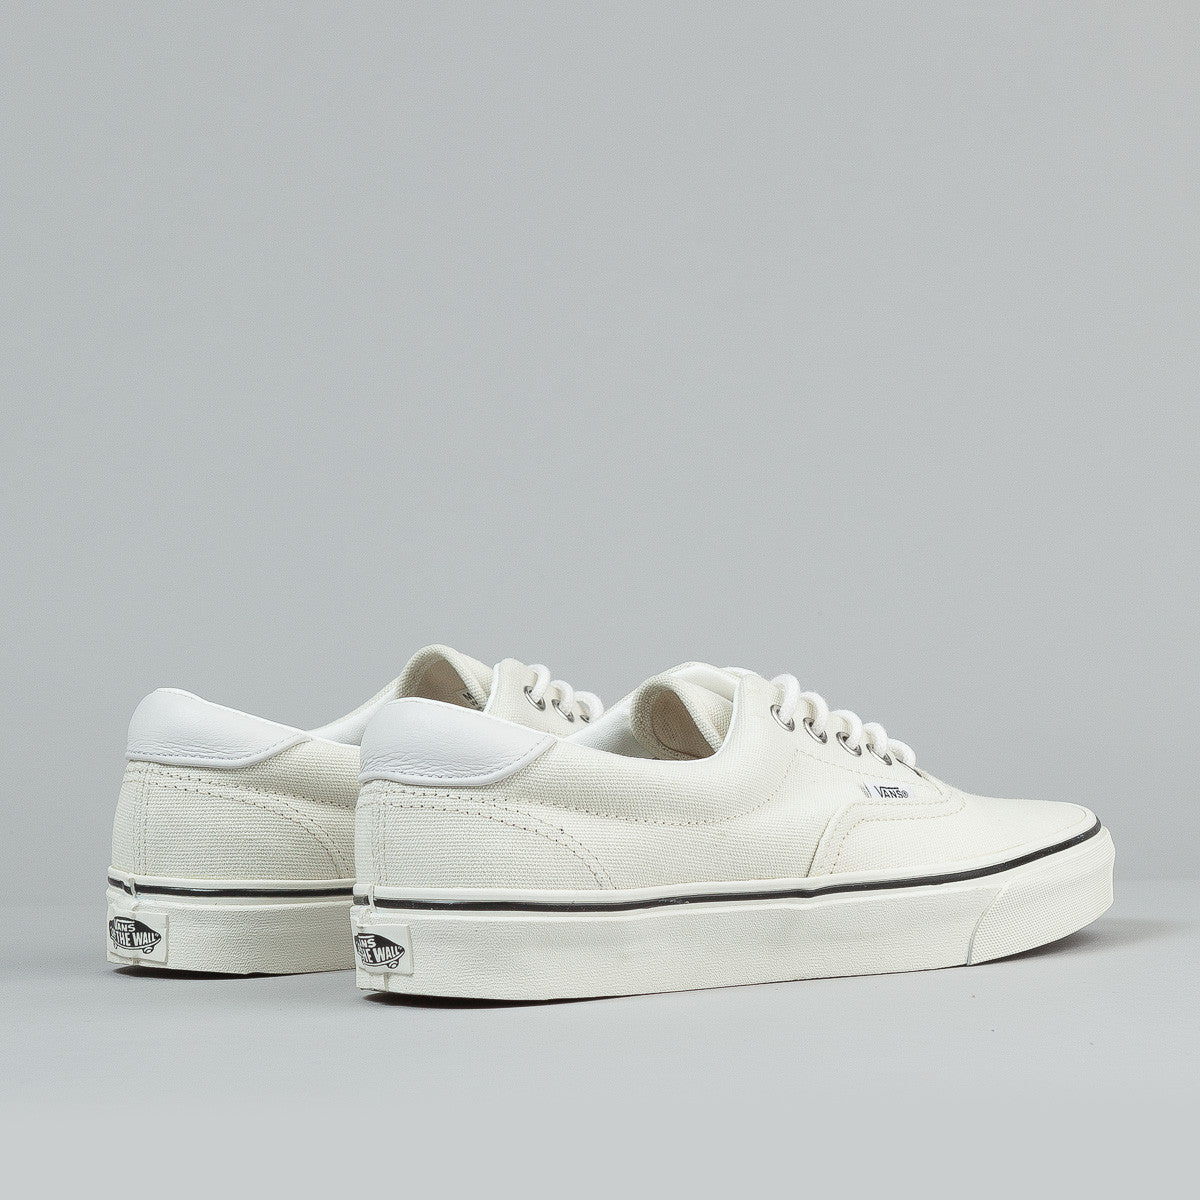 Vans Era 59 Shoes (Leather / Moustache) - Classic White / Marshmallow